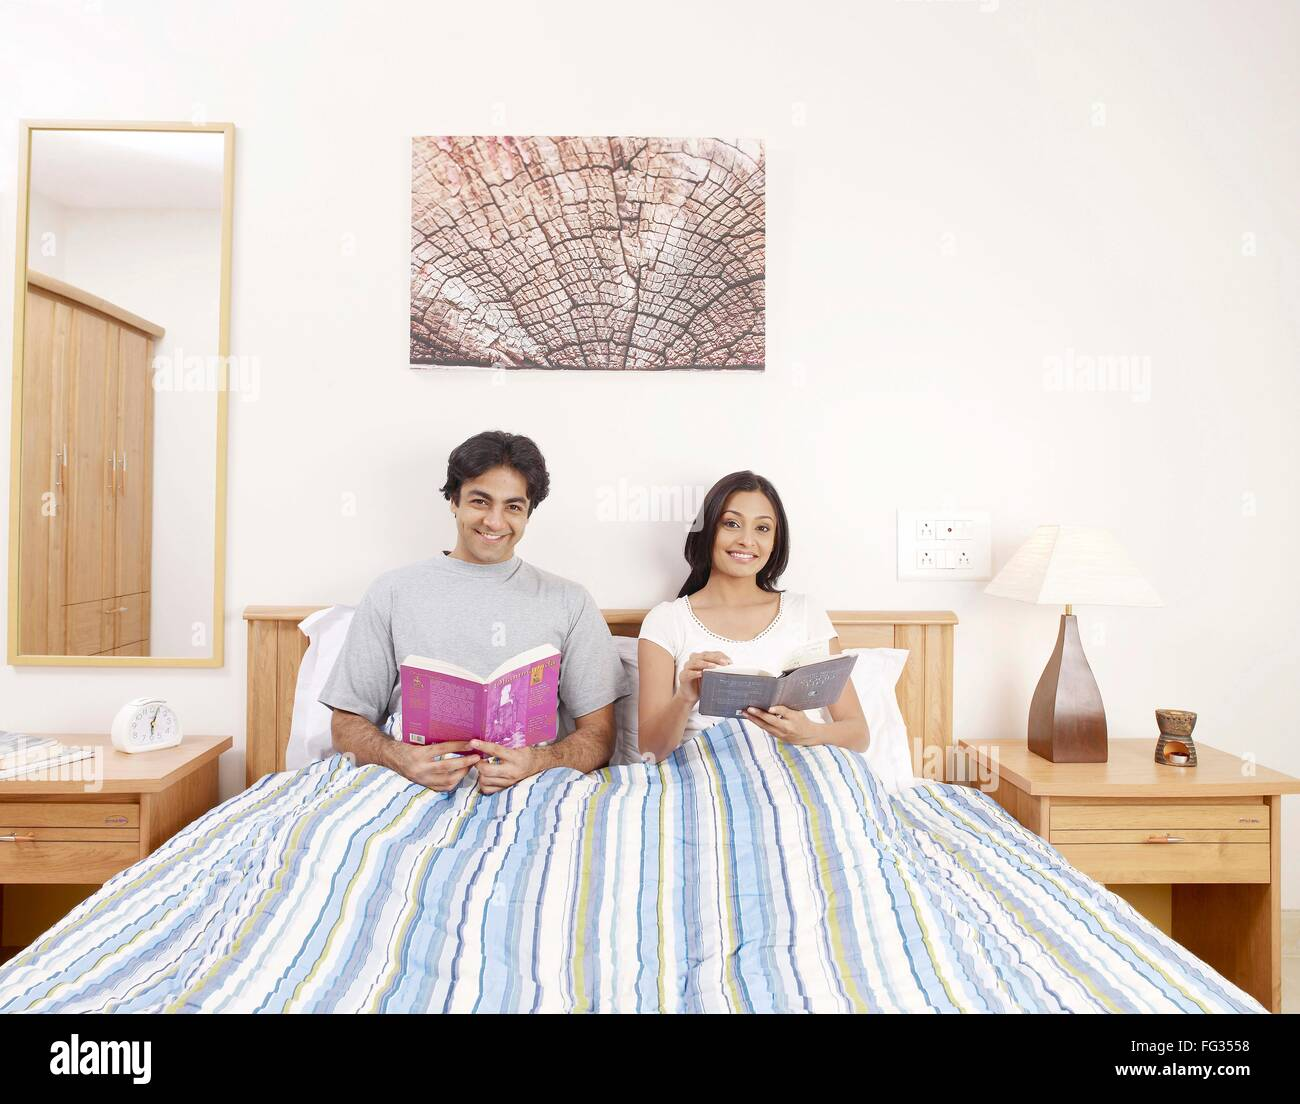 Young man and woman holding novels sitting on bed MR#702V,702U - Stock Image